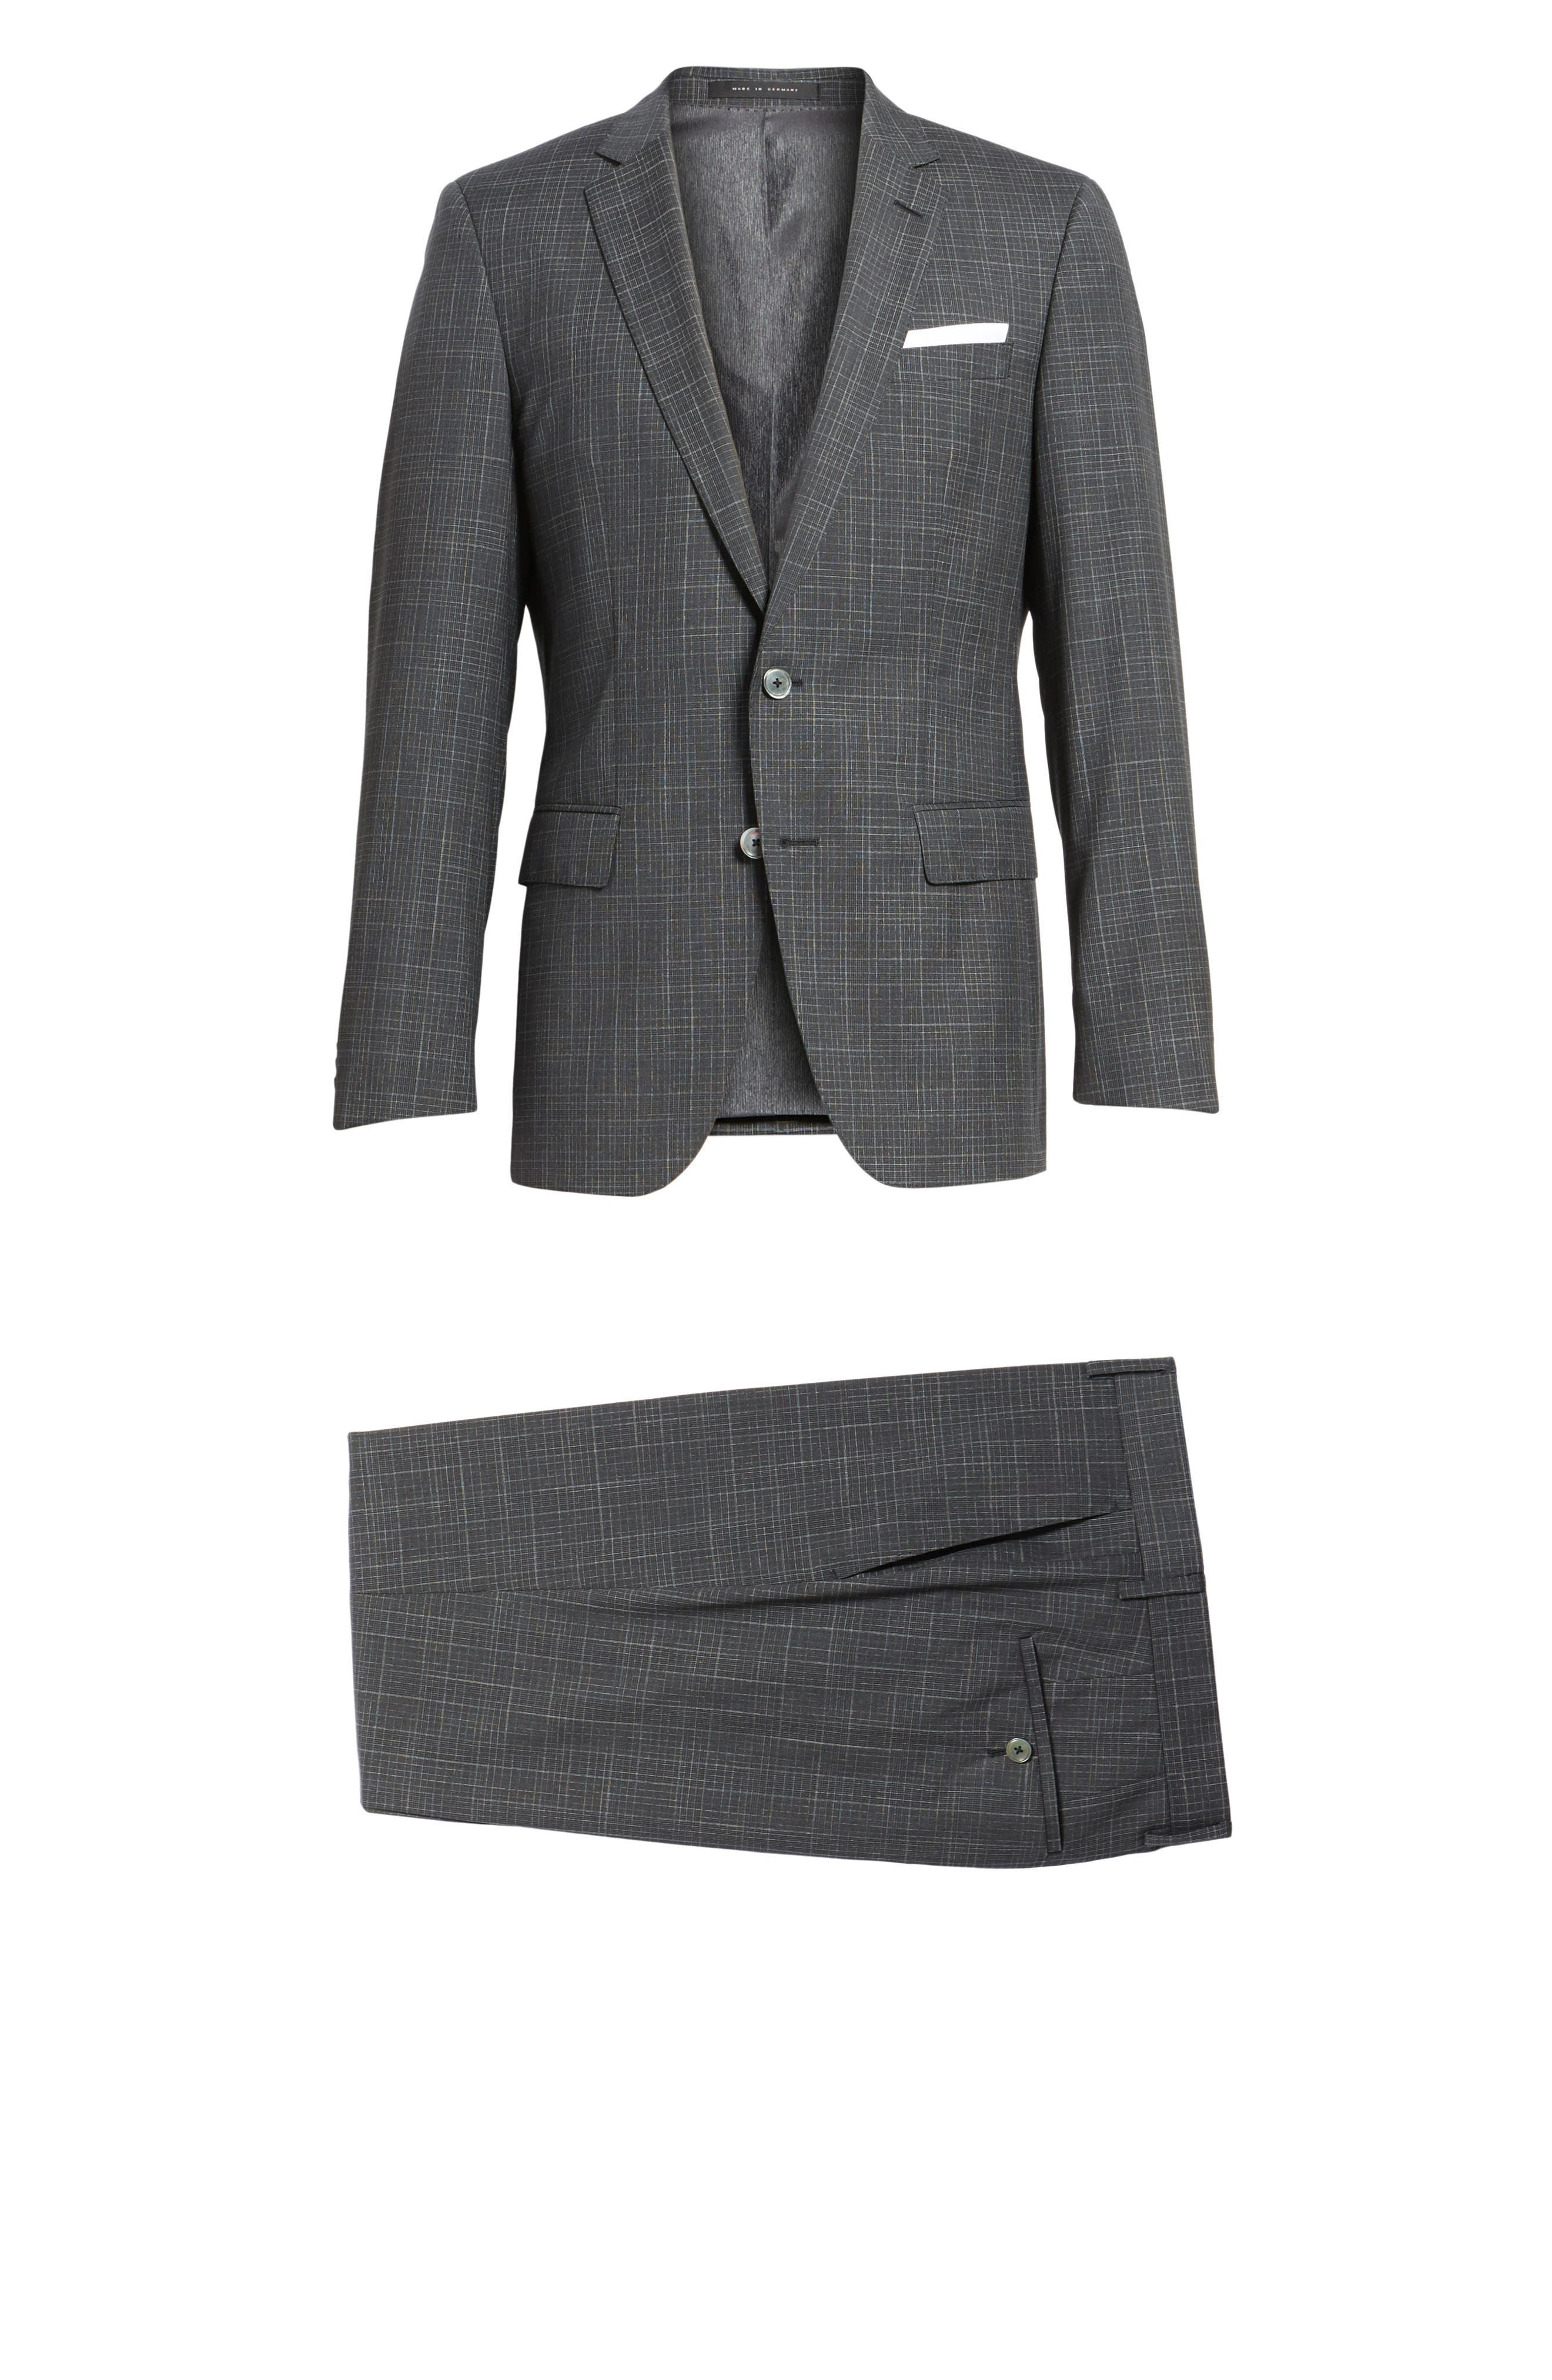 Hutson/Gander Trim Fit Plaid Wool Suit,                             Alternate thumbnail 8, color,                             Open Grey